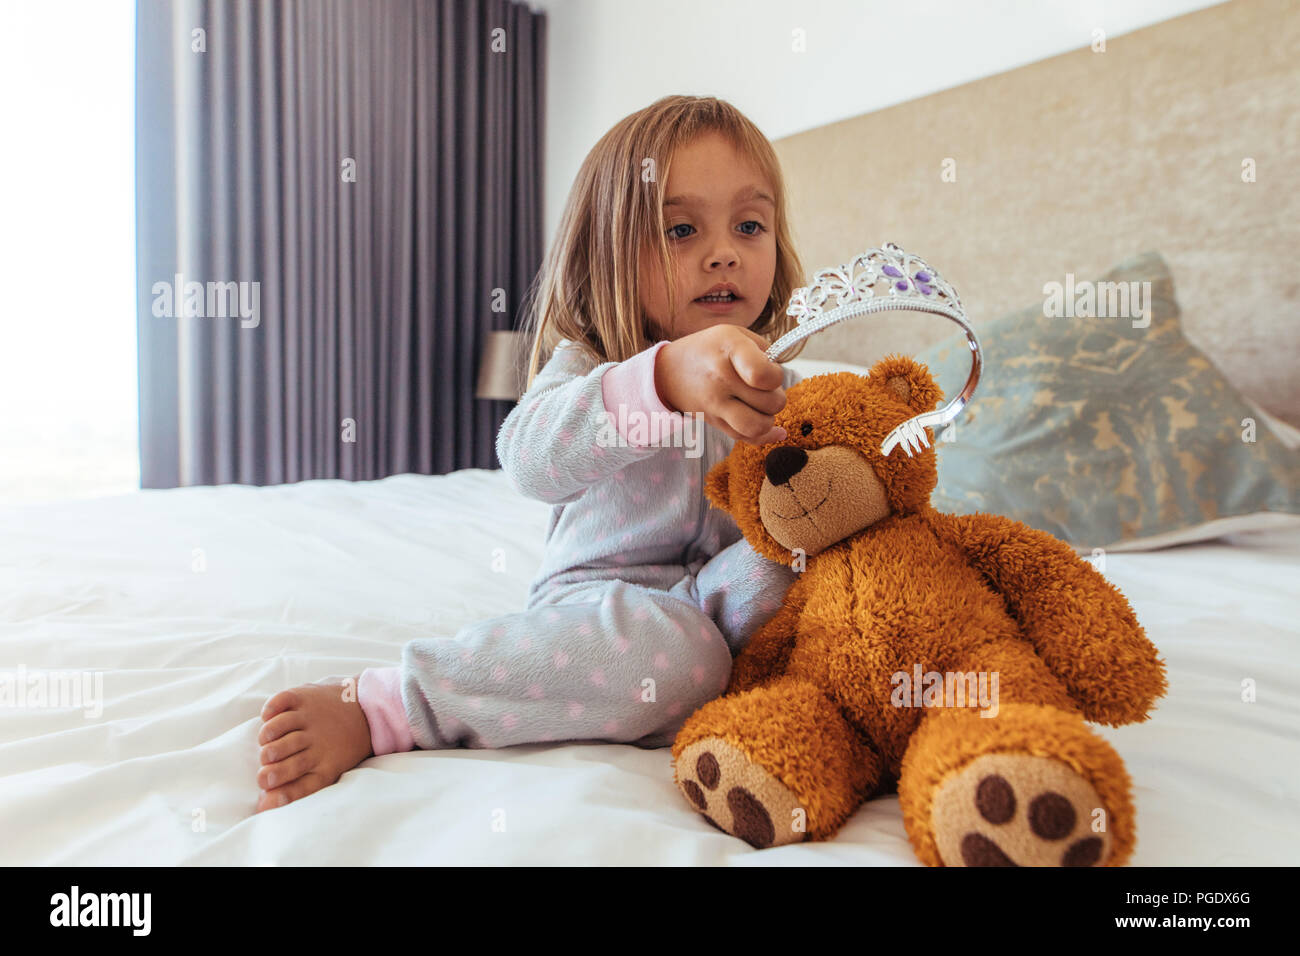 Innocent young girl putting a crown on her teddy bear. Little girl playing with her soft toy. - Stock Image